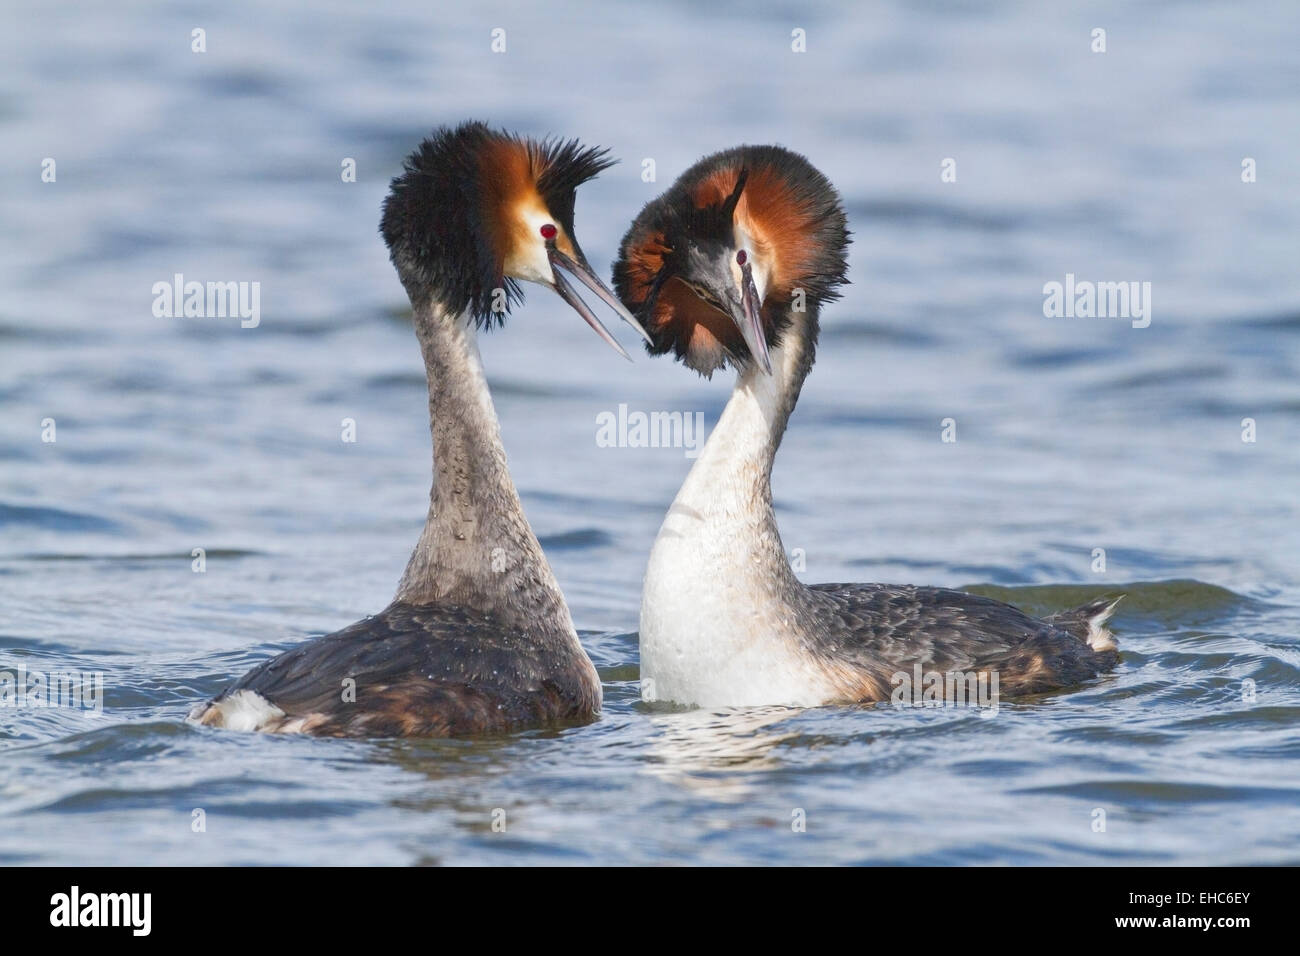 Great Crested Grebe (Podiceps cristatus) pair in courtship display on water, Norfolk, England, United Kingdom, Europe - Stock Image